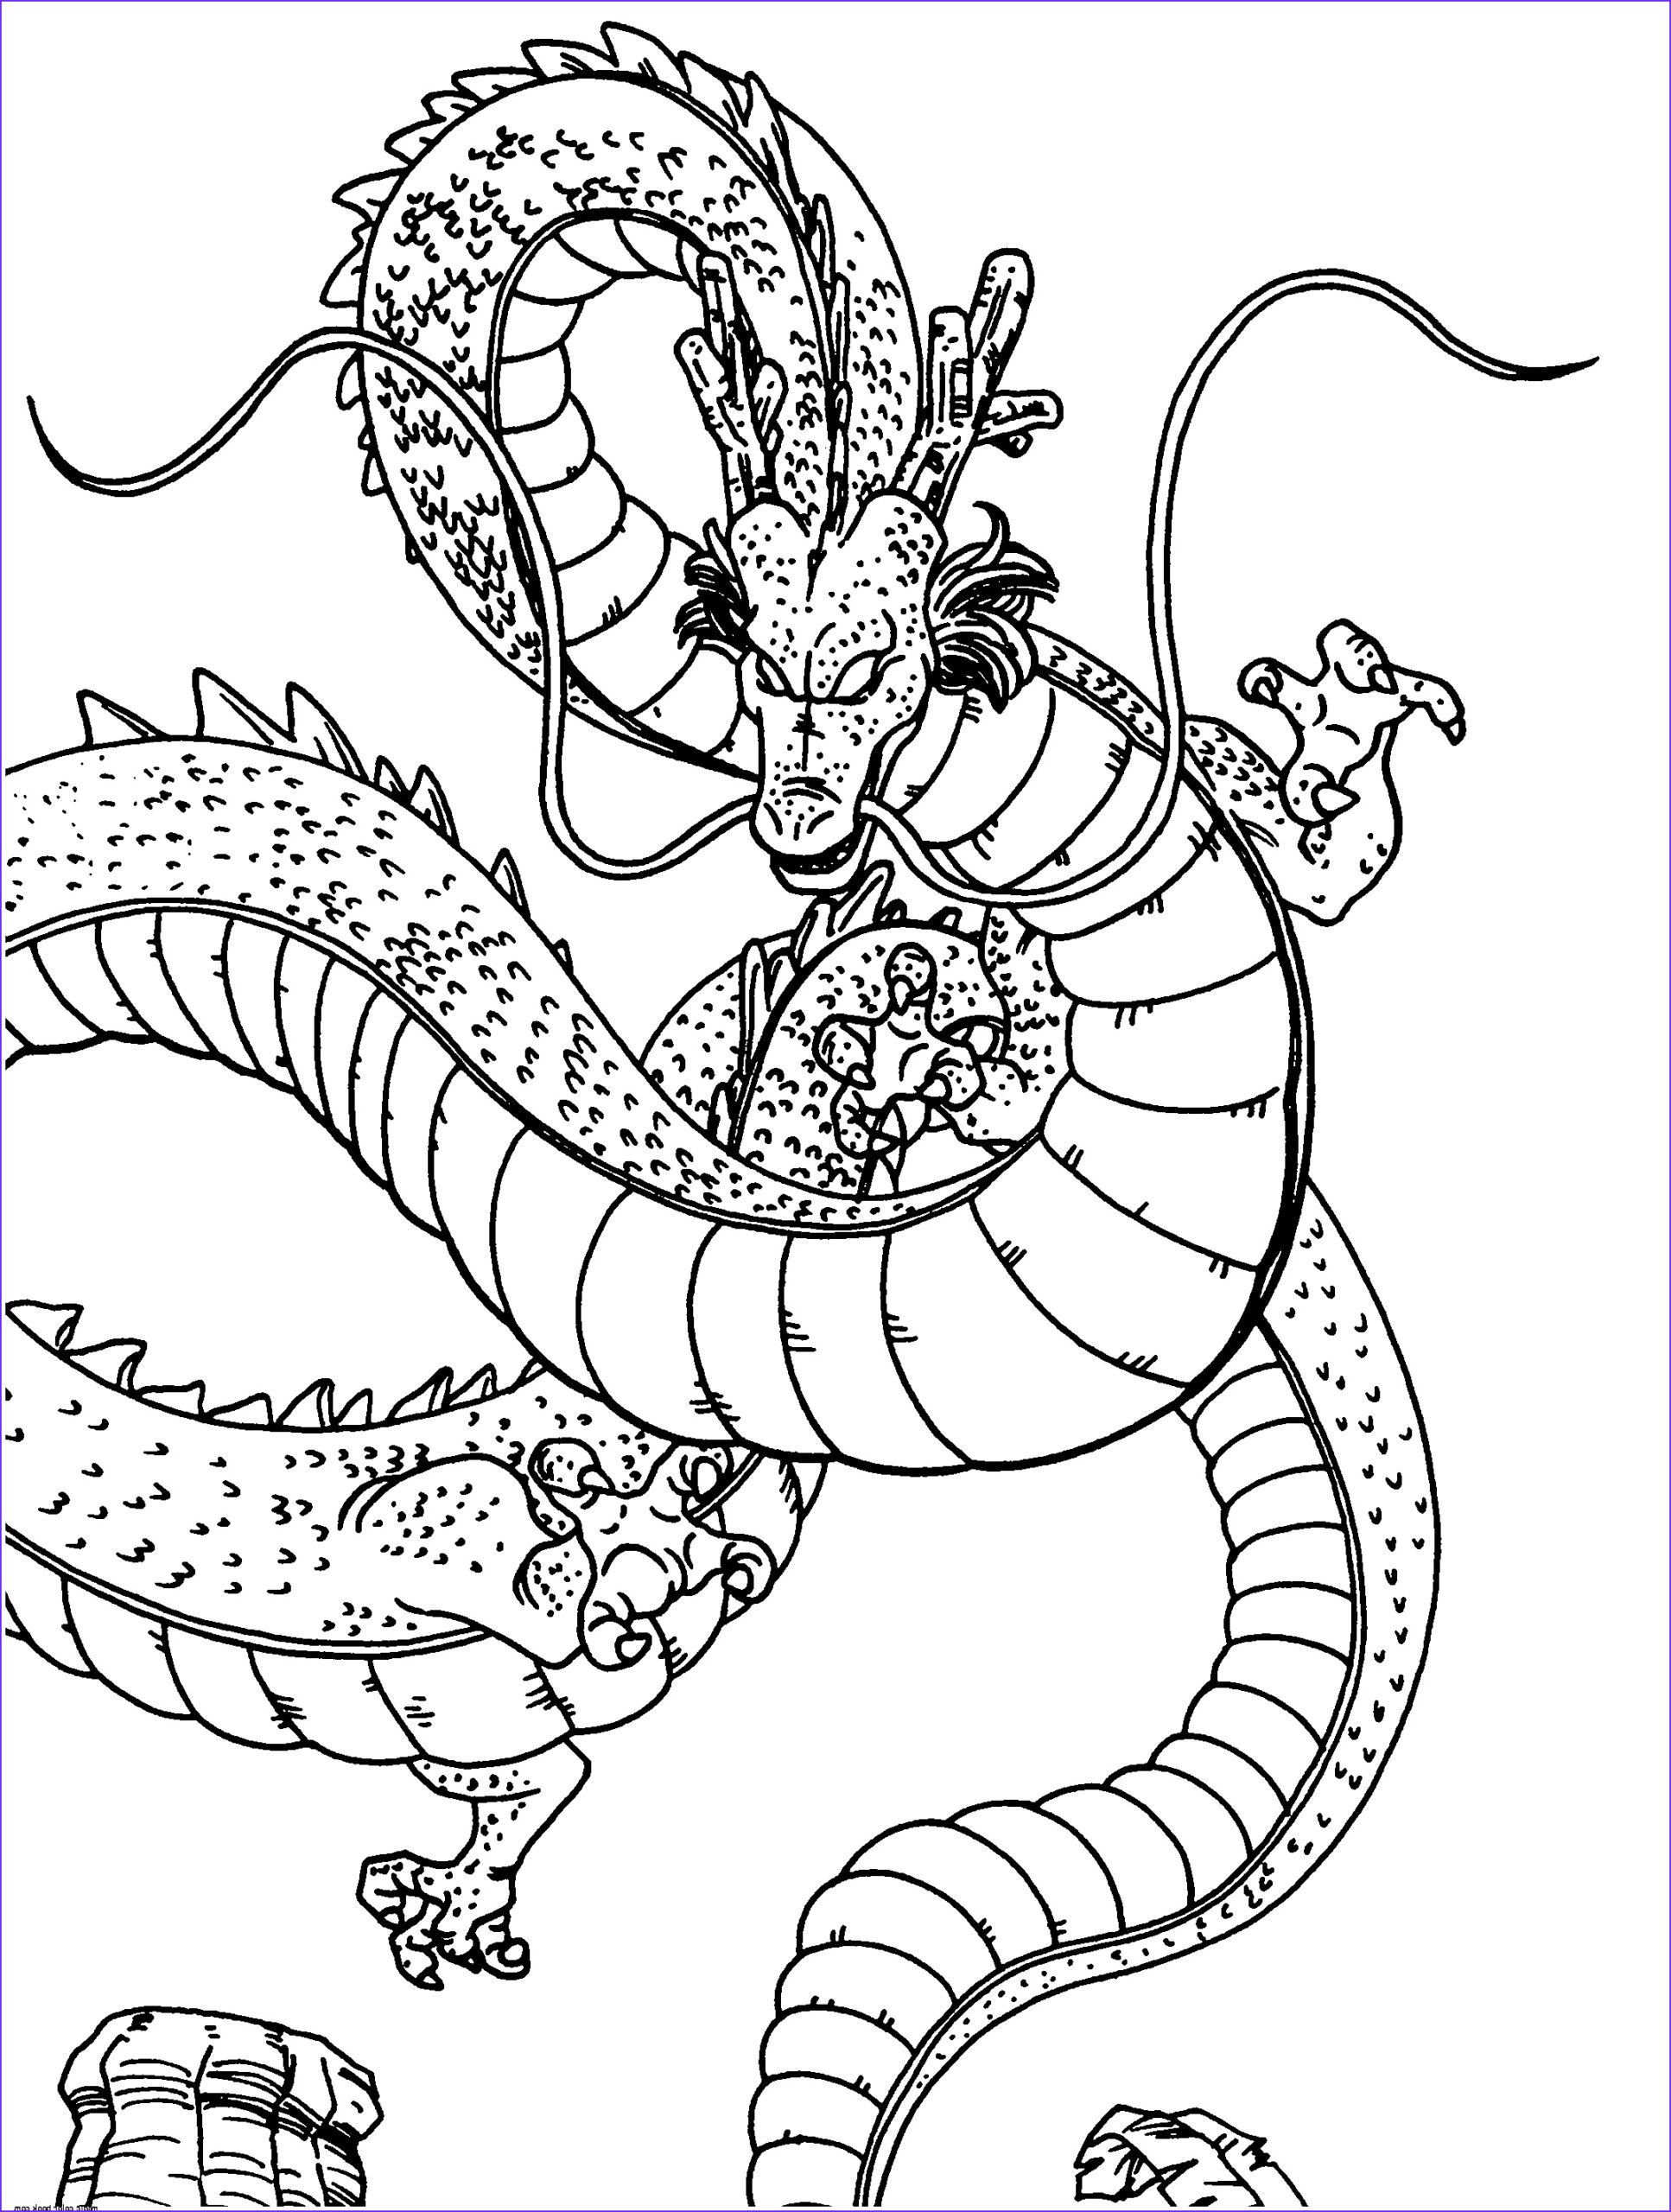 dragon ball z shenron coloring pages